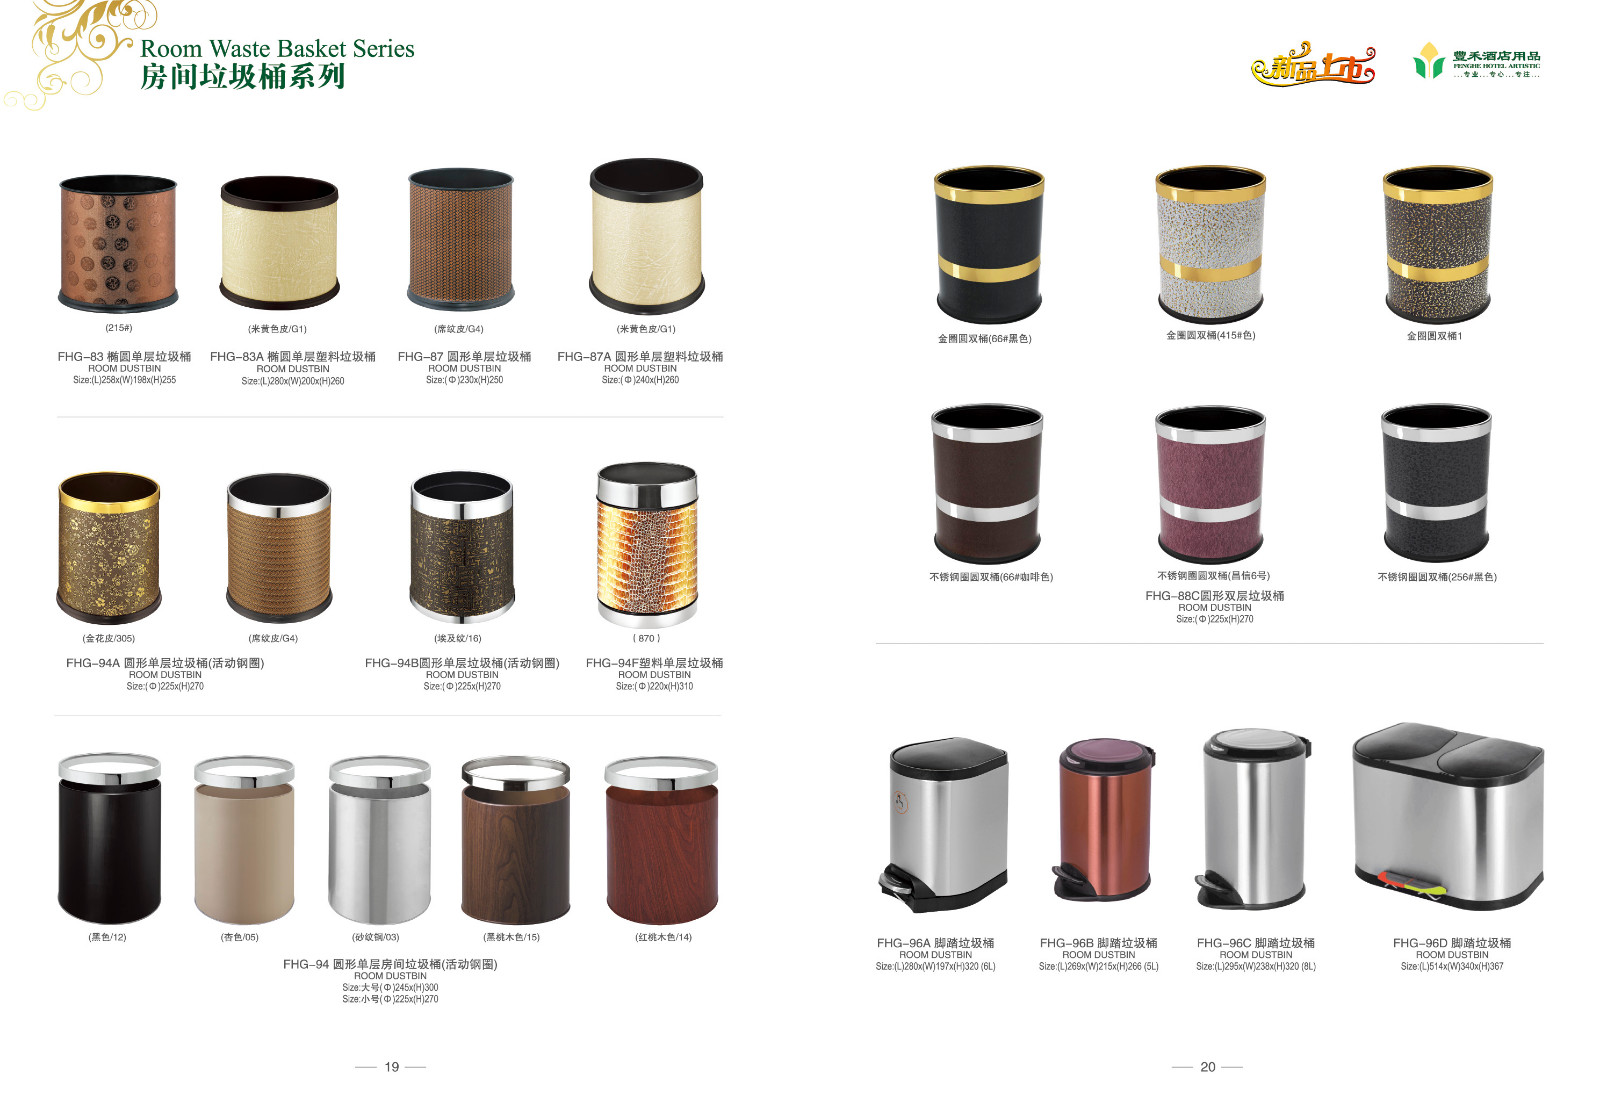 Fenghe-Hotel Room Leather Waste Bin | Hotel Room Trash Cans | Fenghe-8